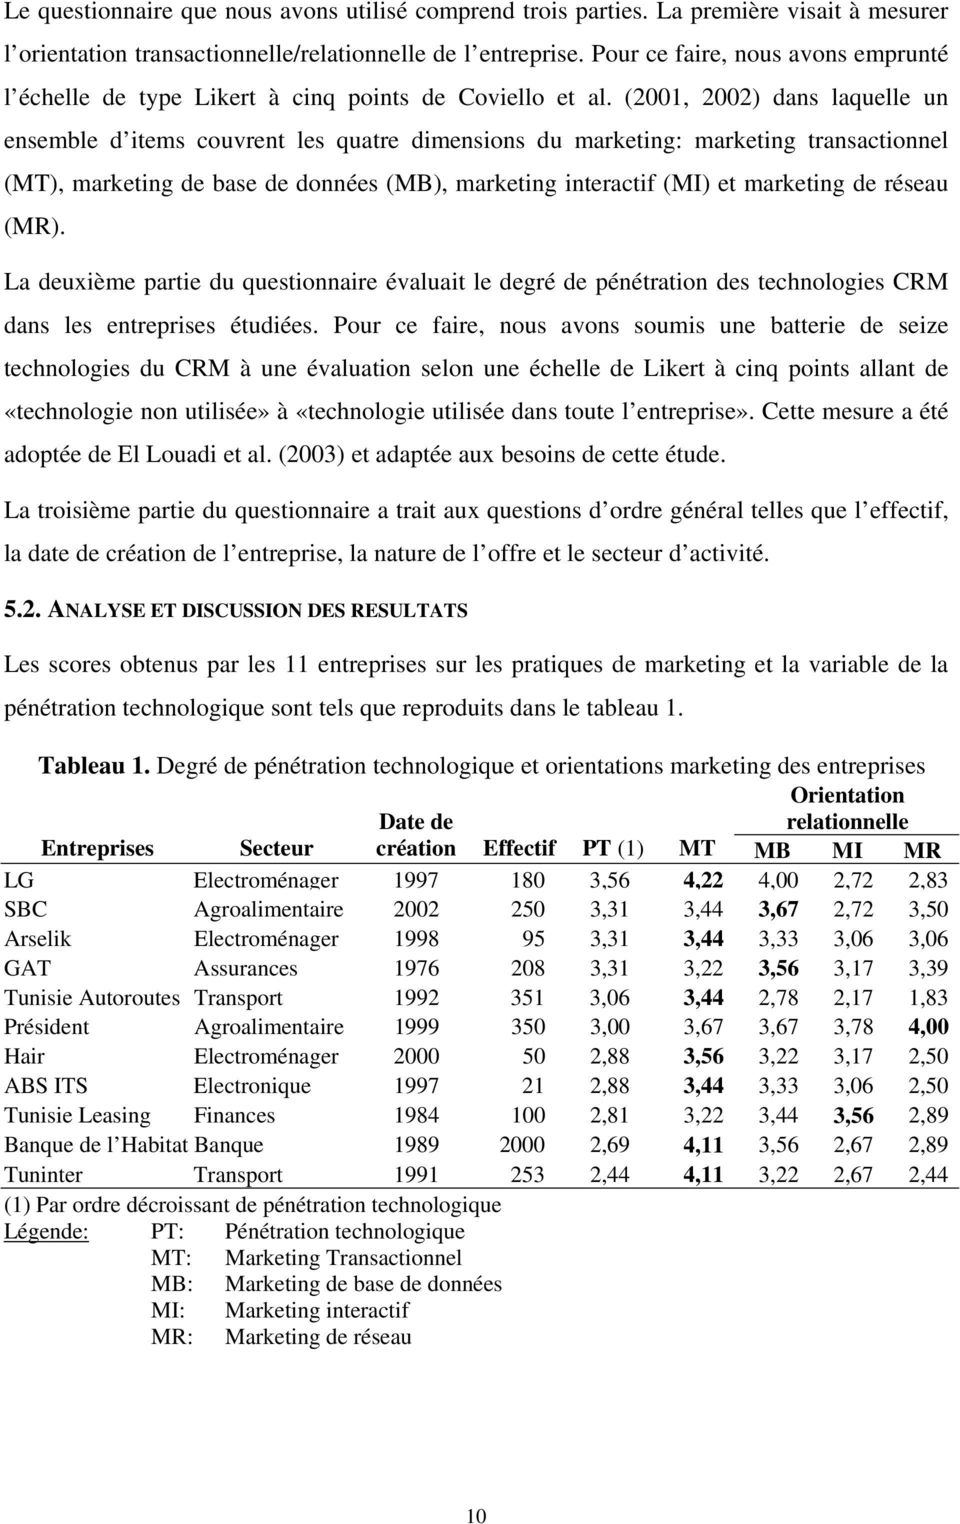 (2001, 2002) dans laquelle un ensemble d items couvrent les quatre dimensions du marketing: marketing transactionnel (MT), marketing de base de données (MB), marketing interactif (MI) et marketing de